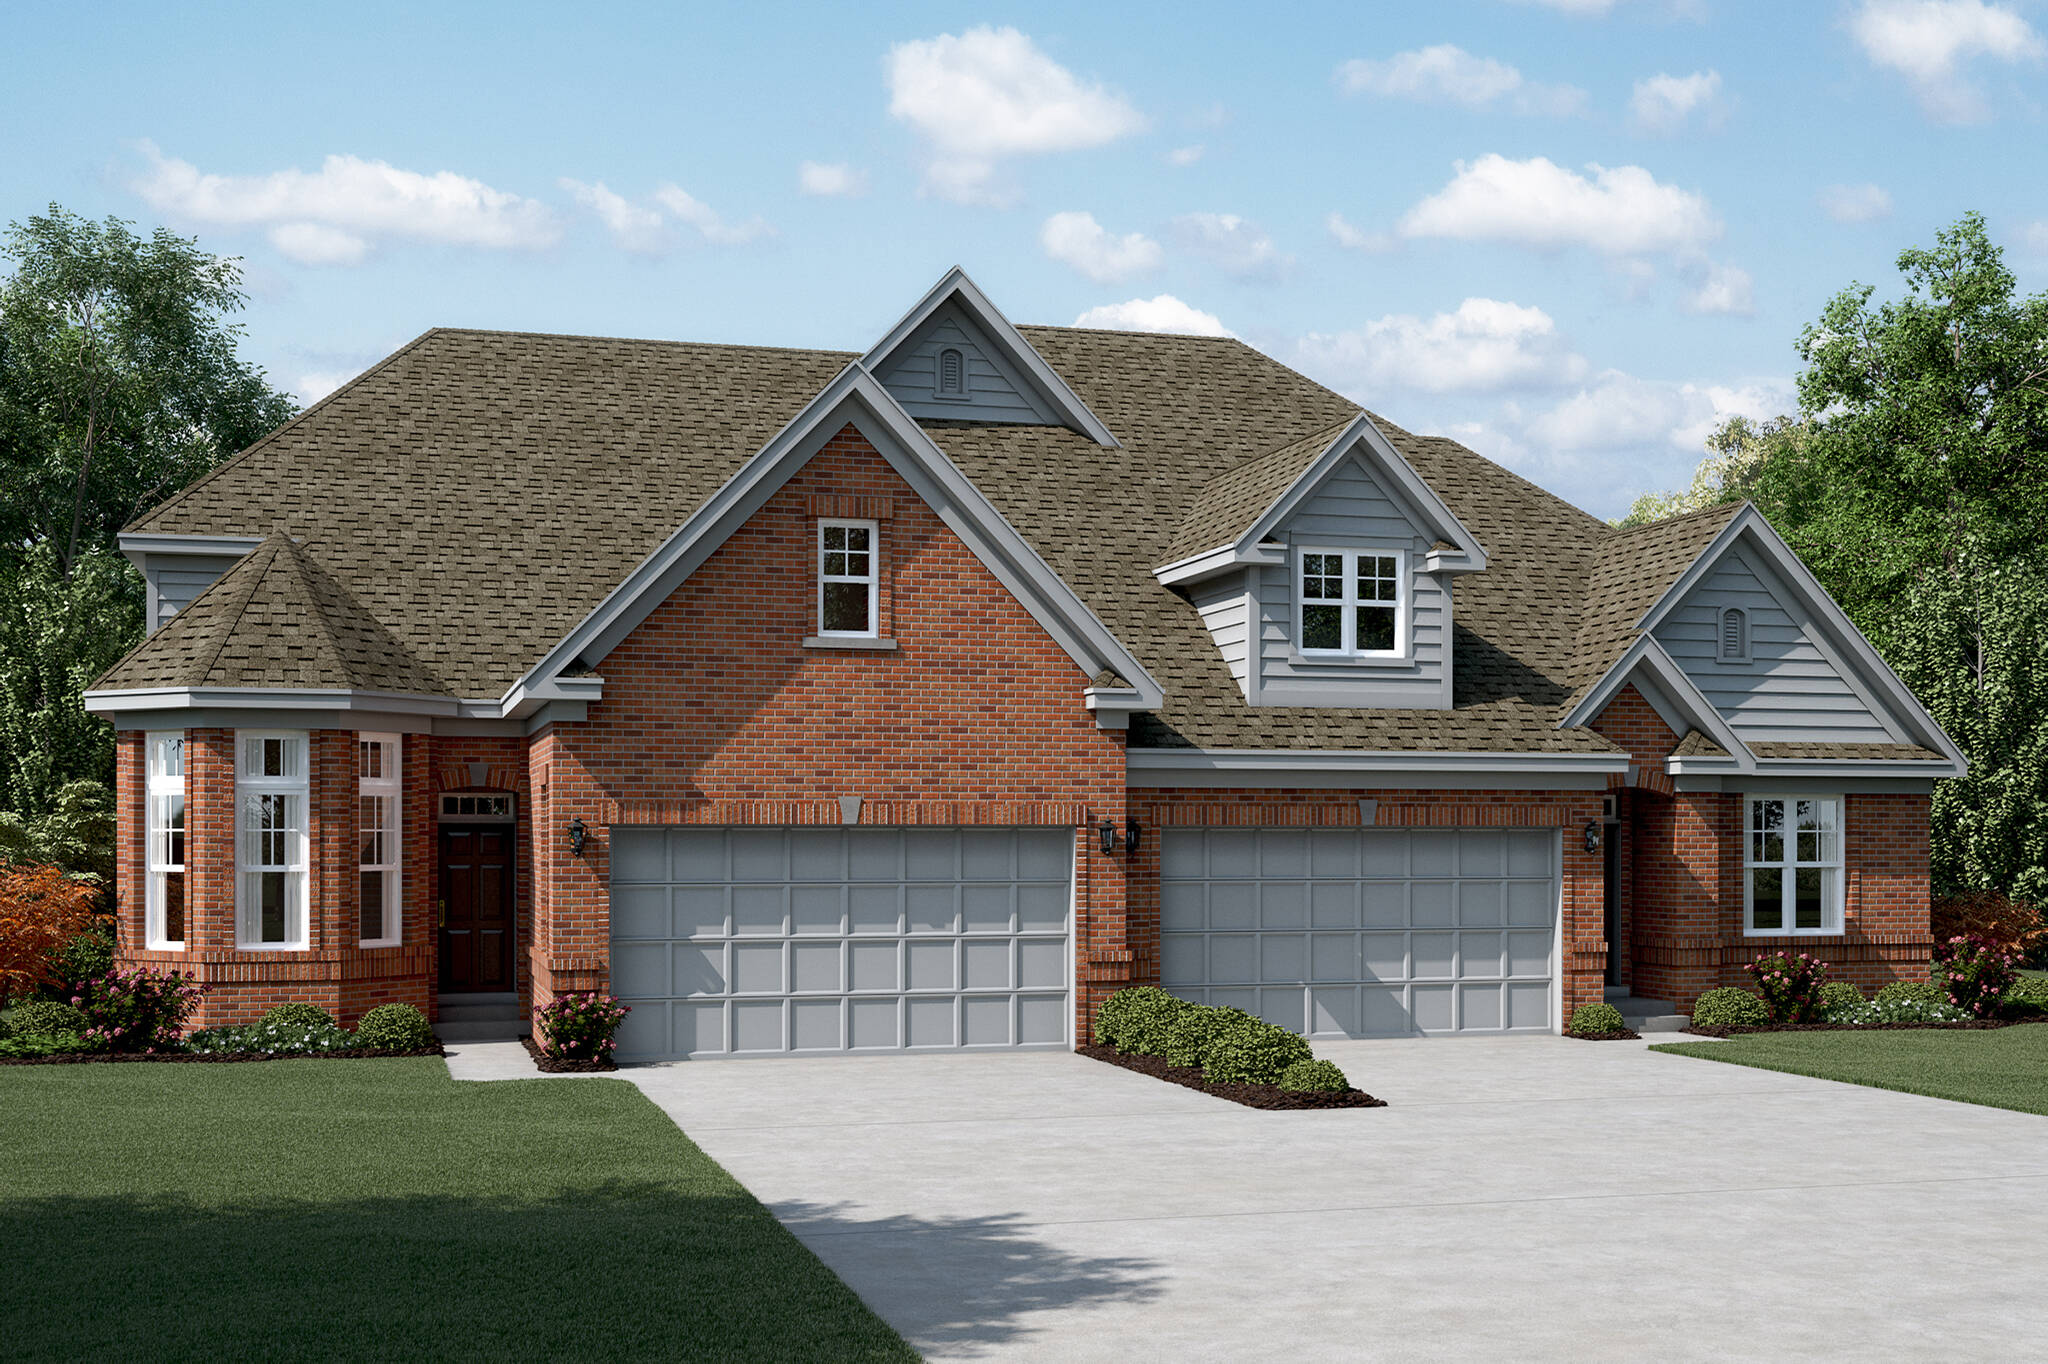 villas at trafford place - new homes in naperville, il